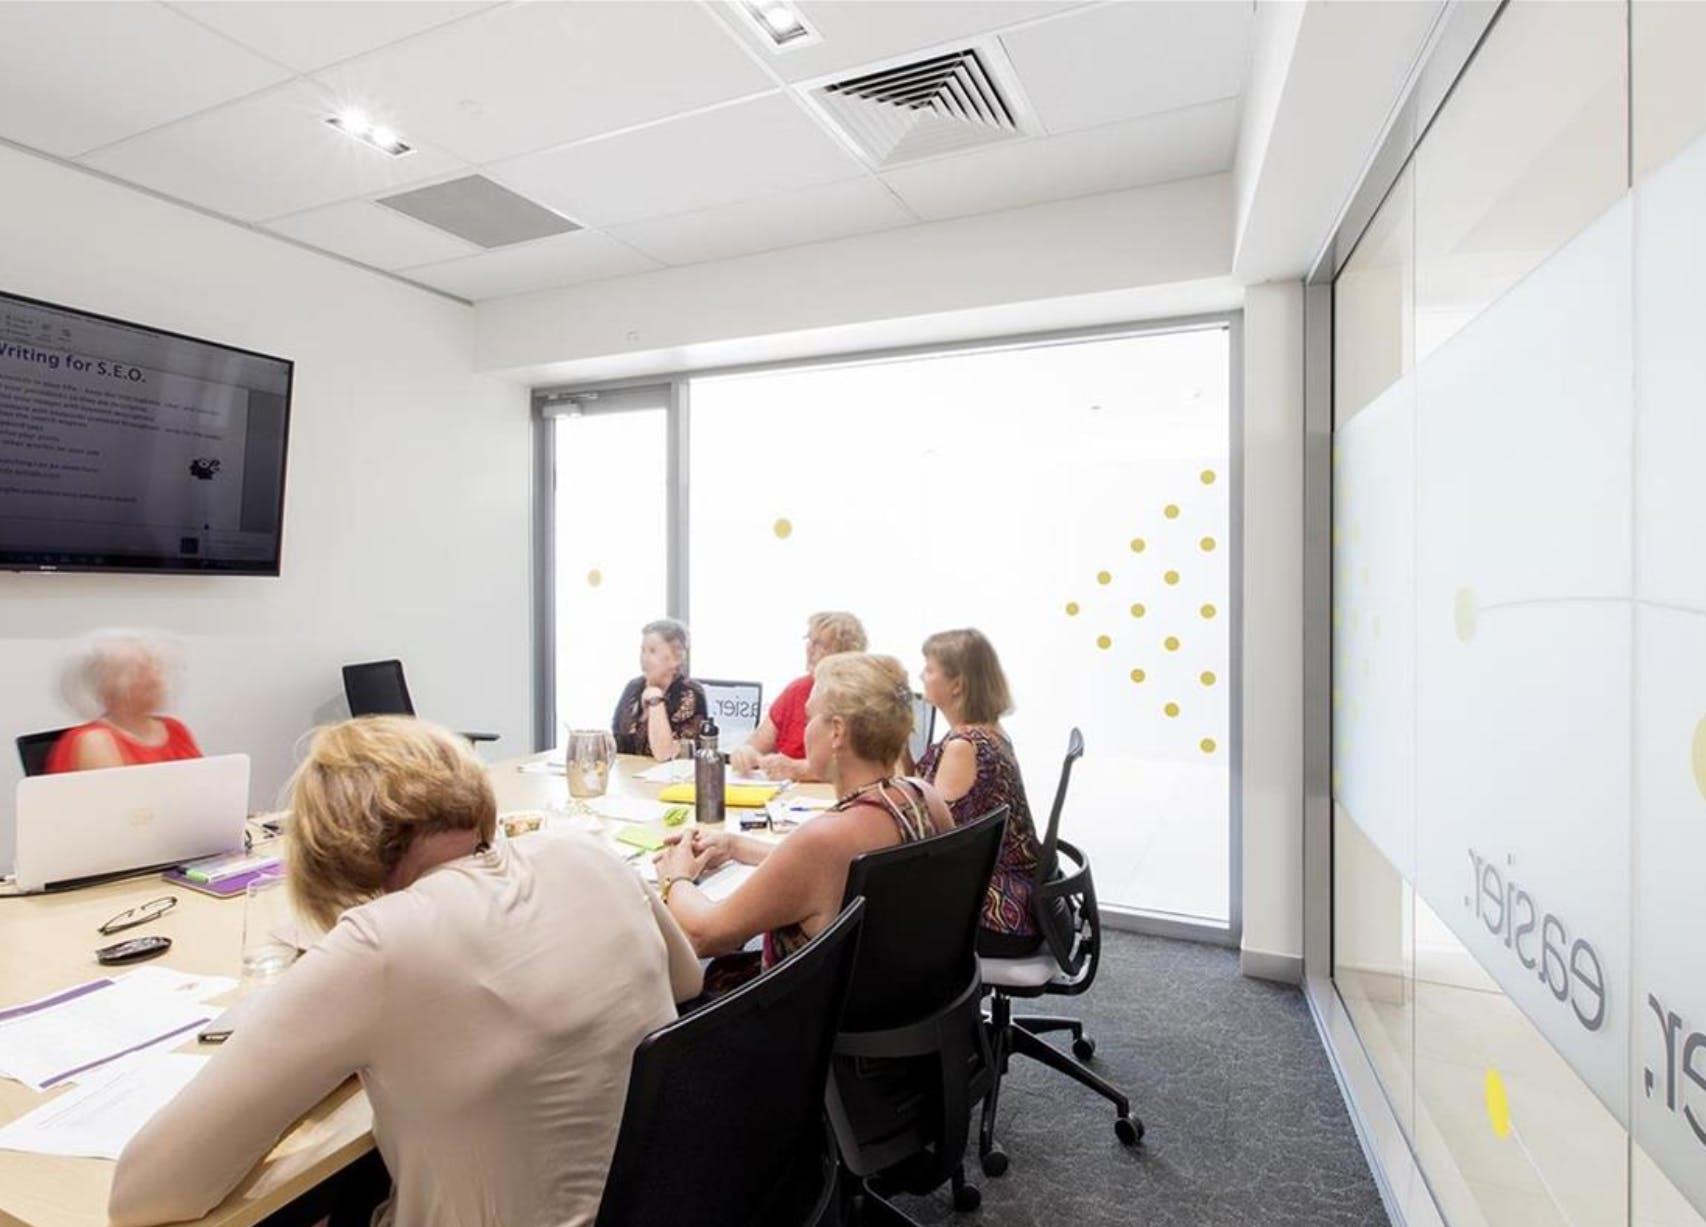 The Yellowbox Boardroom, meeting room at The Hive Coworking & Office Space, image 1